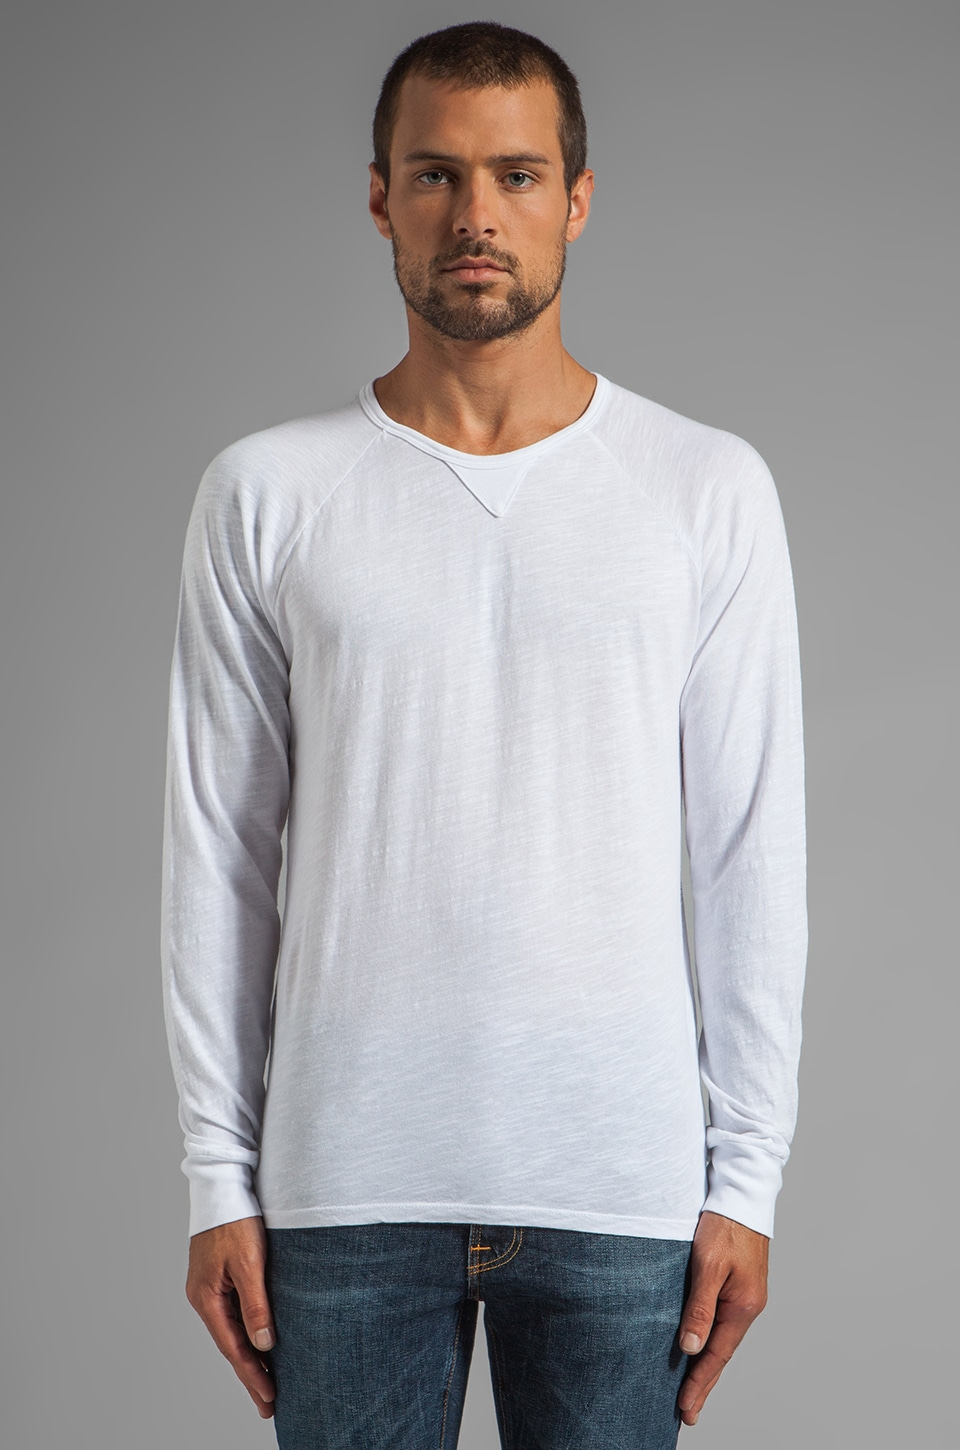 Velvet by Graham & Spencer Owen L/S Tee in White